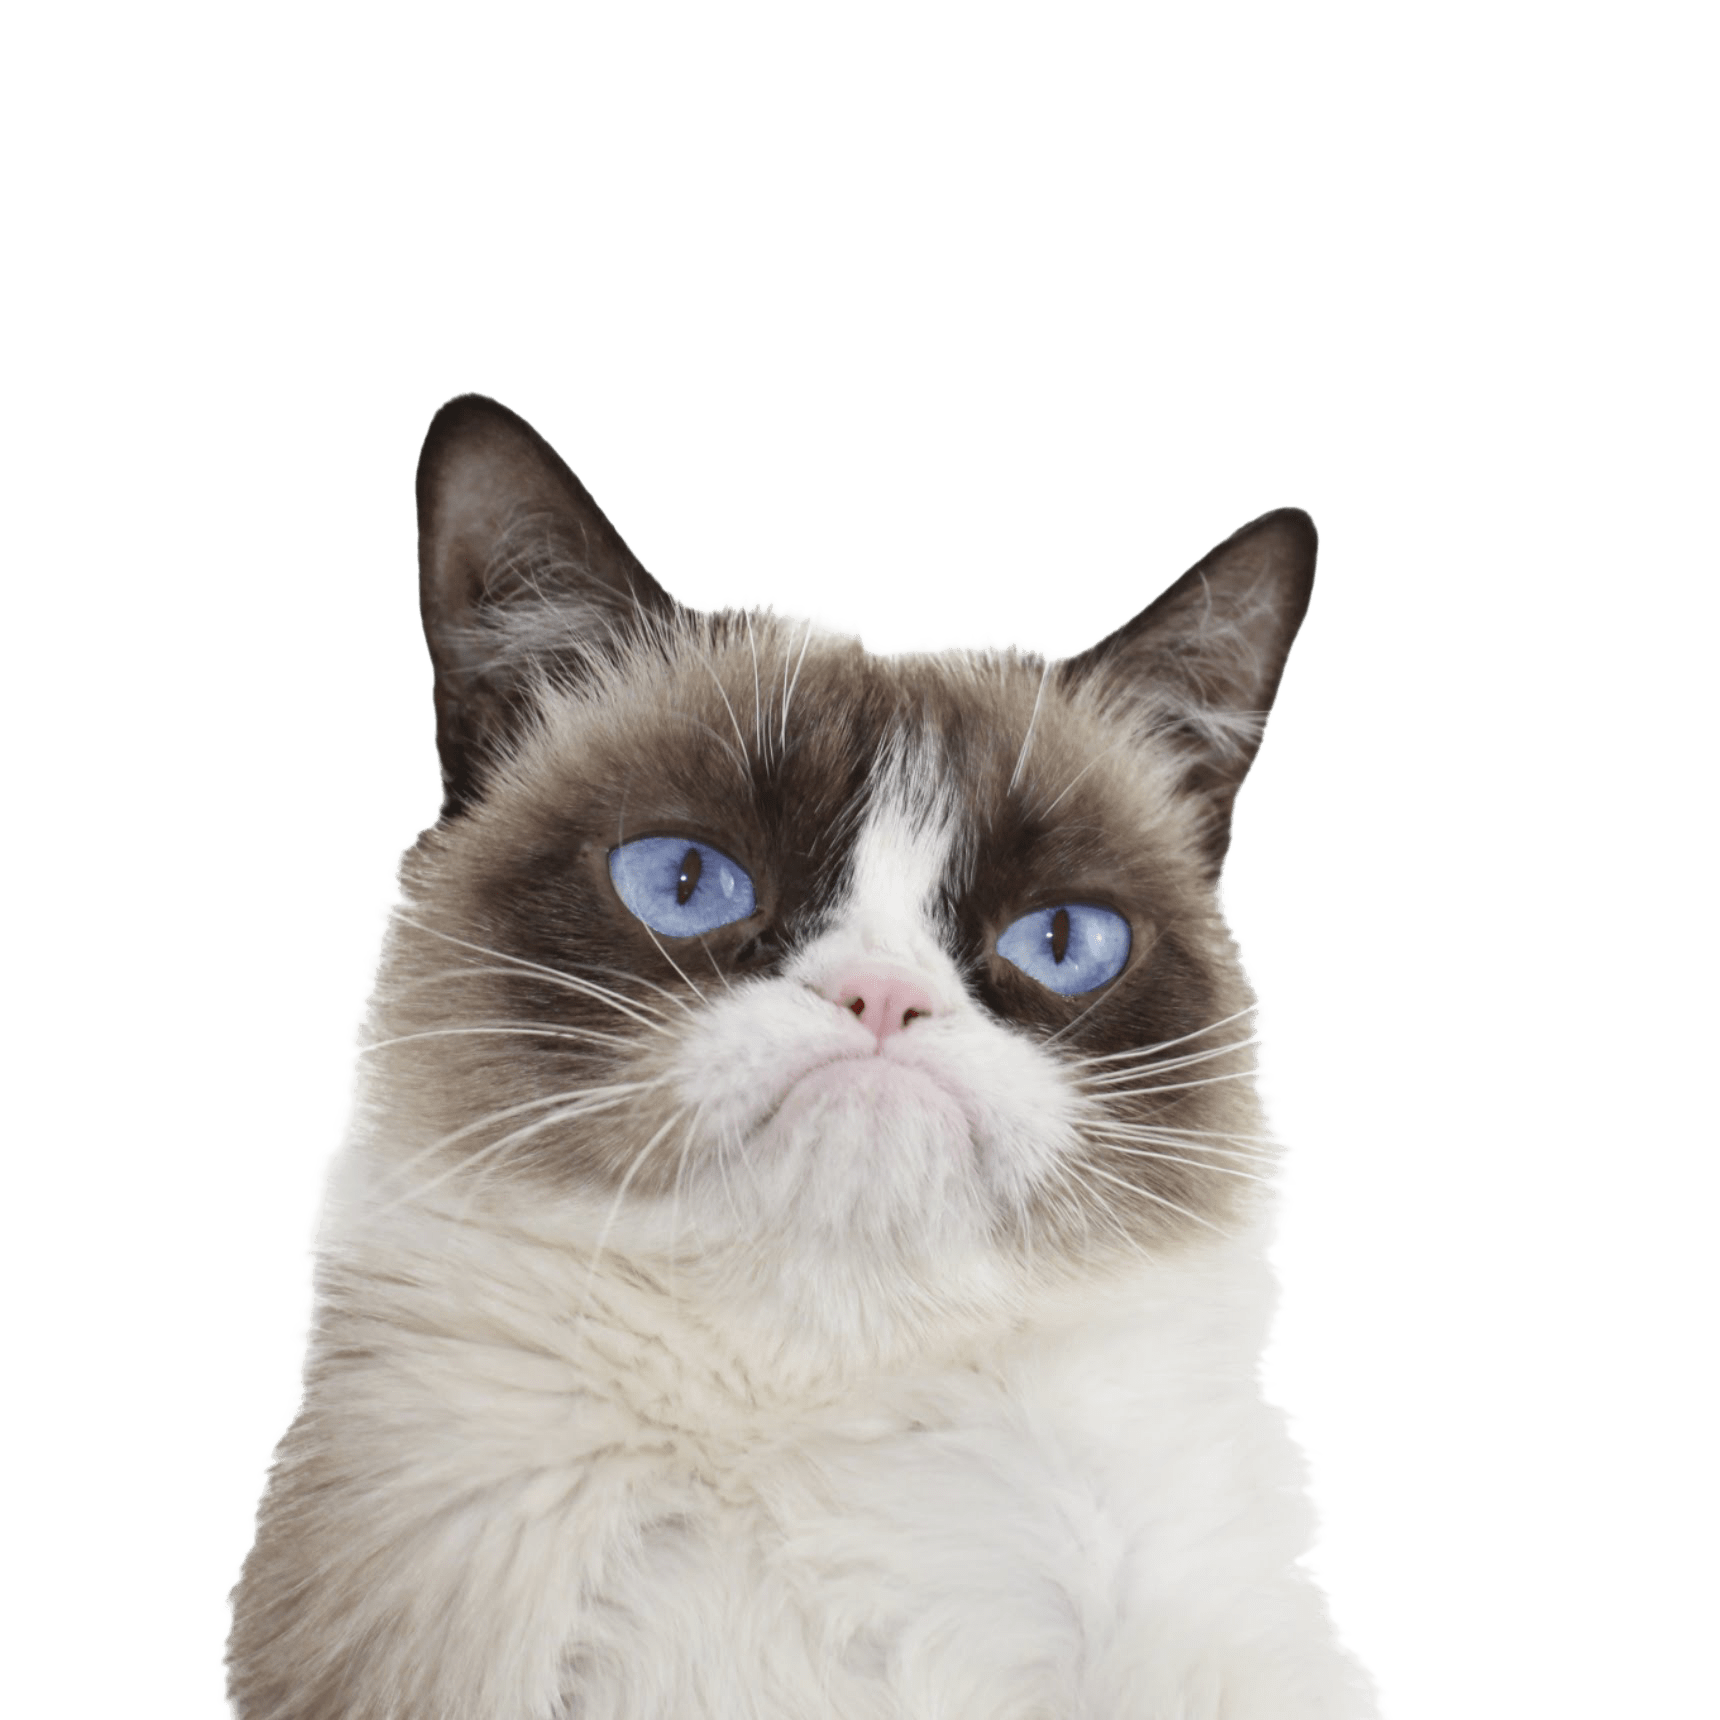 Cat with glasses clipart jpg Grumpy Cat Clipart Mad Cat Free collection   Download and share ... jpg